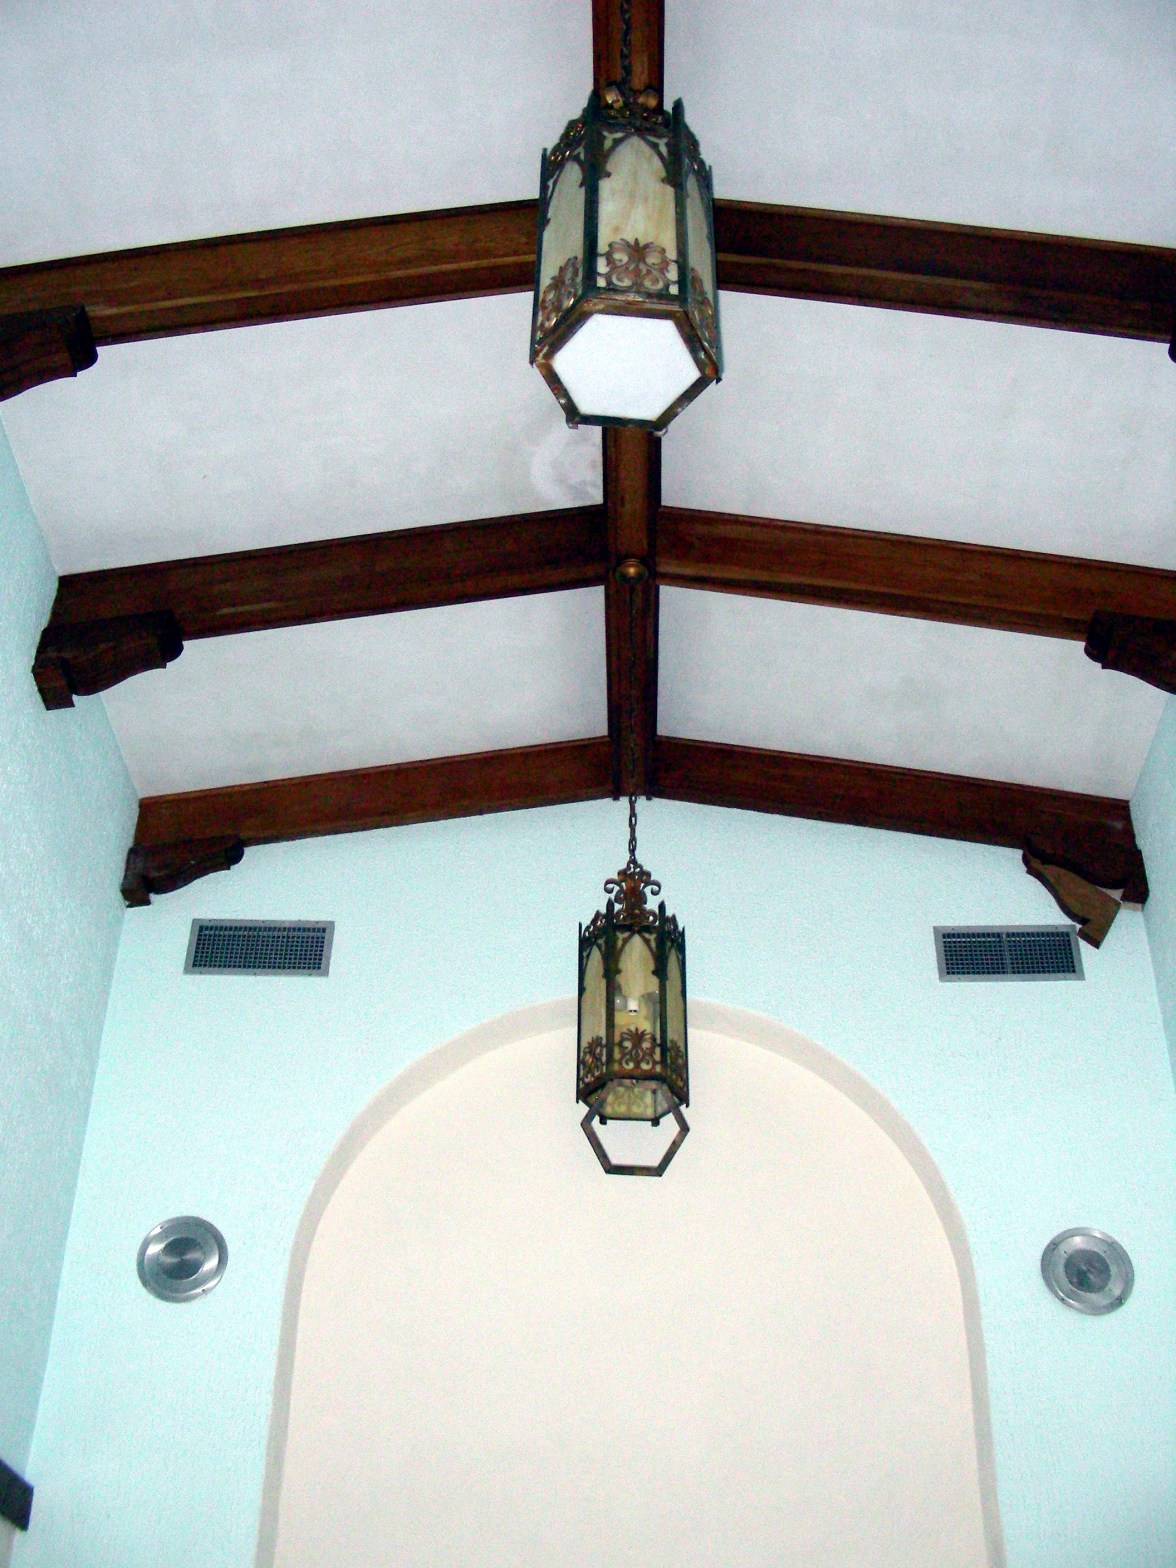 Ceiling of Chapel, from door toward the altar